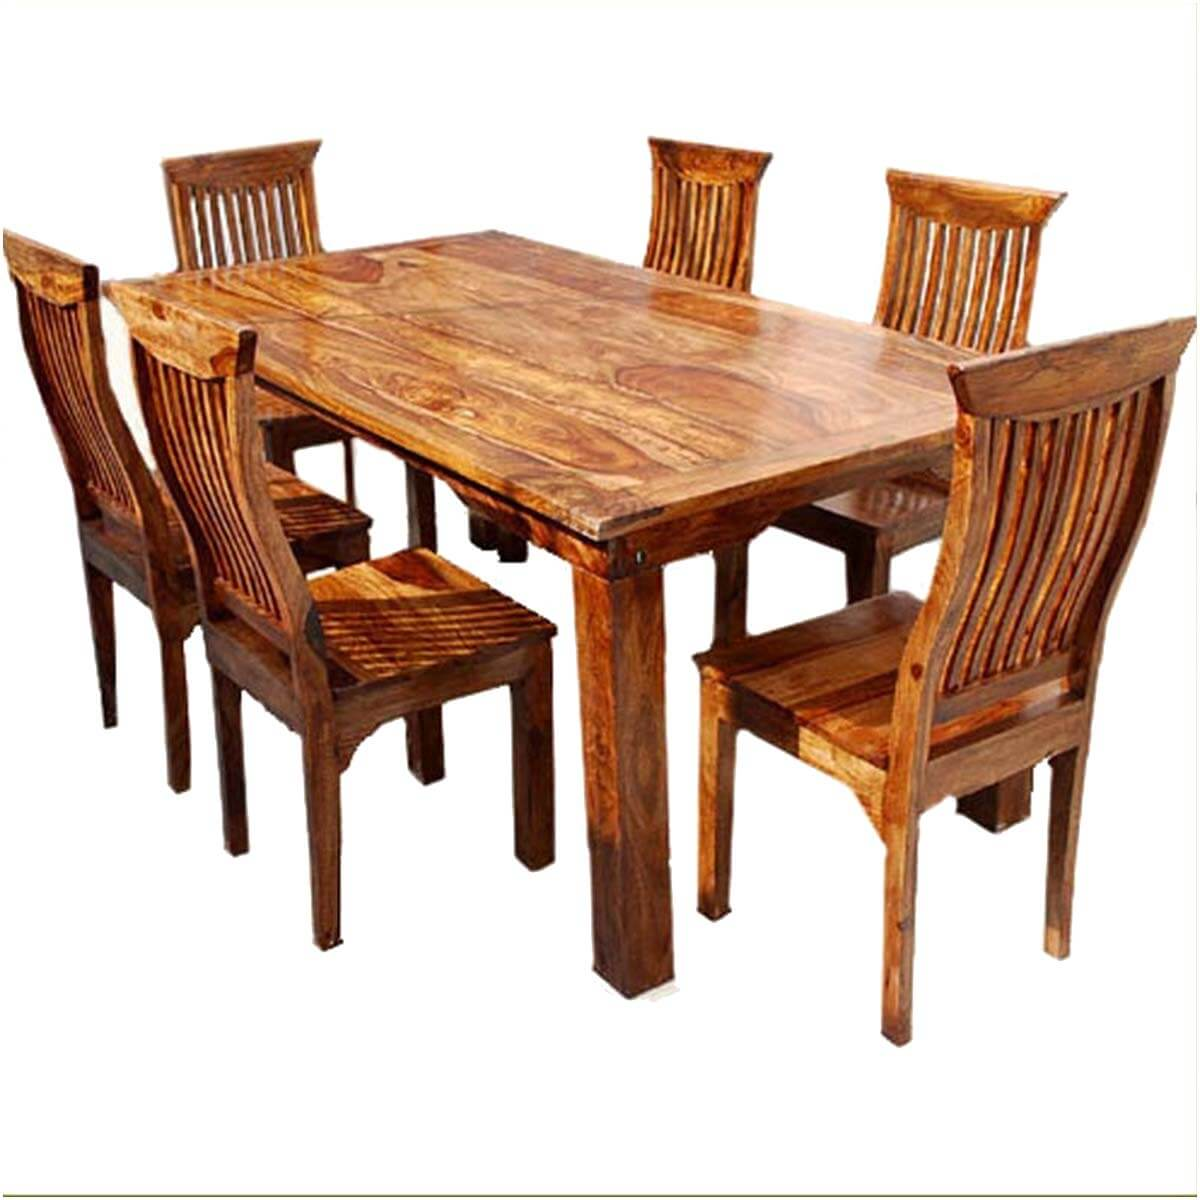 Dining Chairs Set Dallas Ranch Solid Wood Rustic Dining Table Chairs And Hutch Set